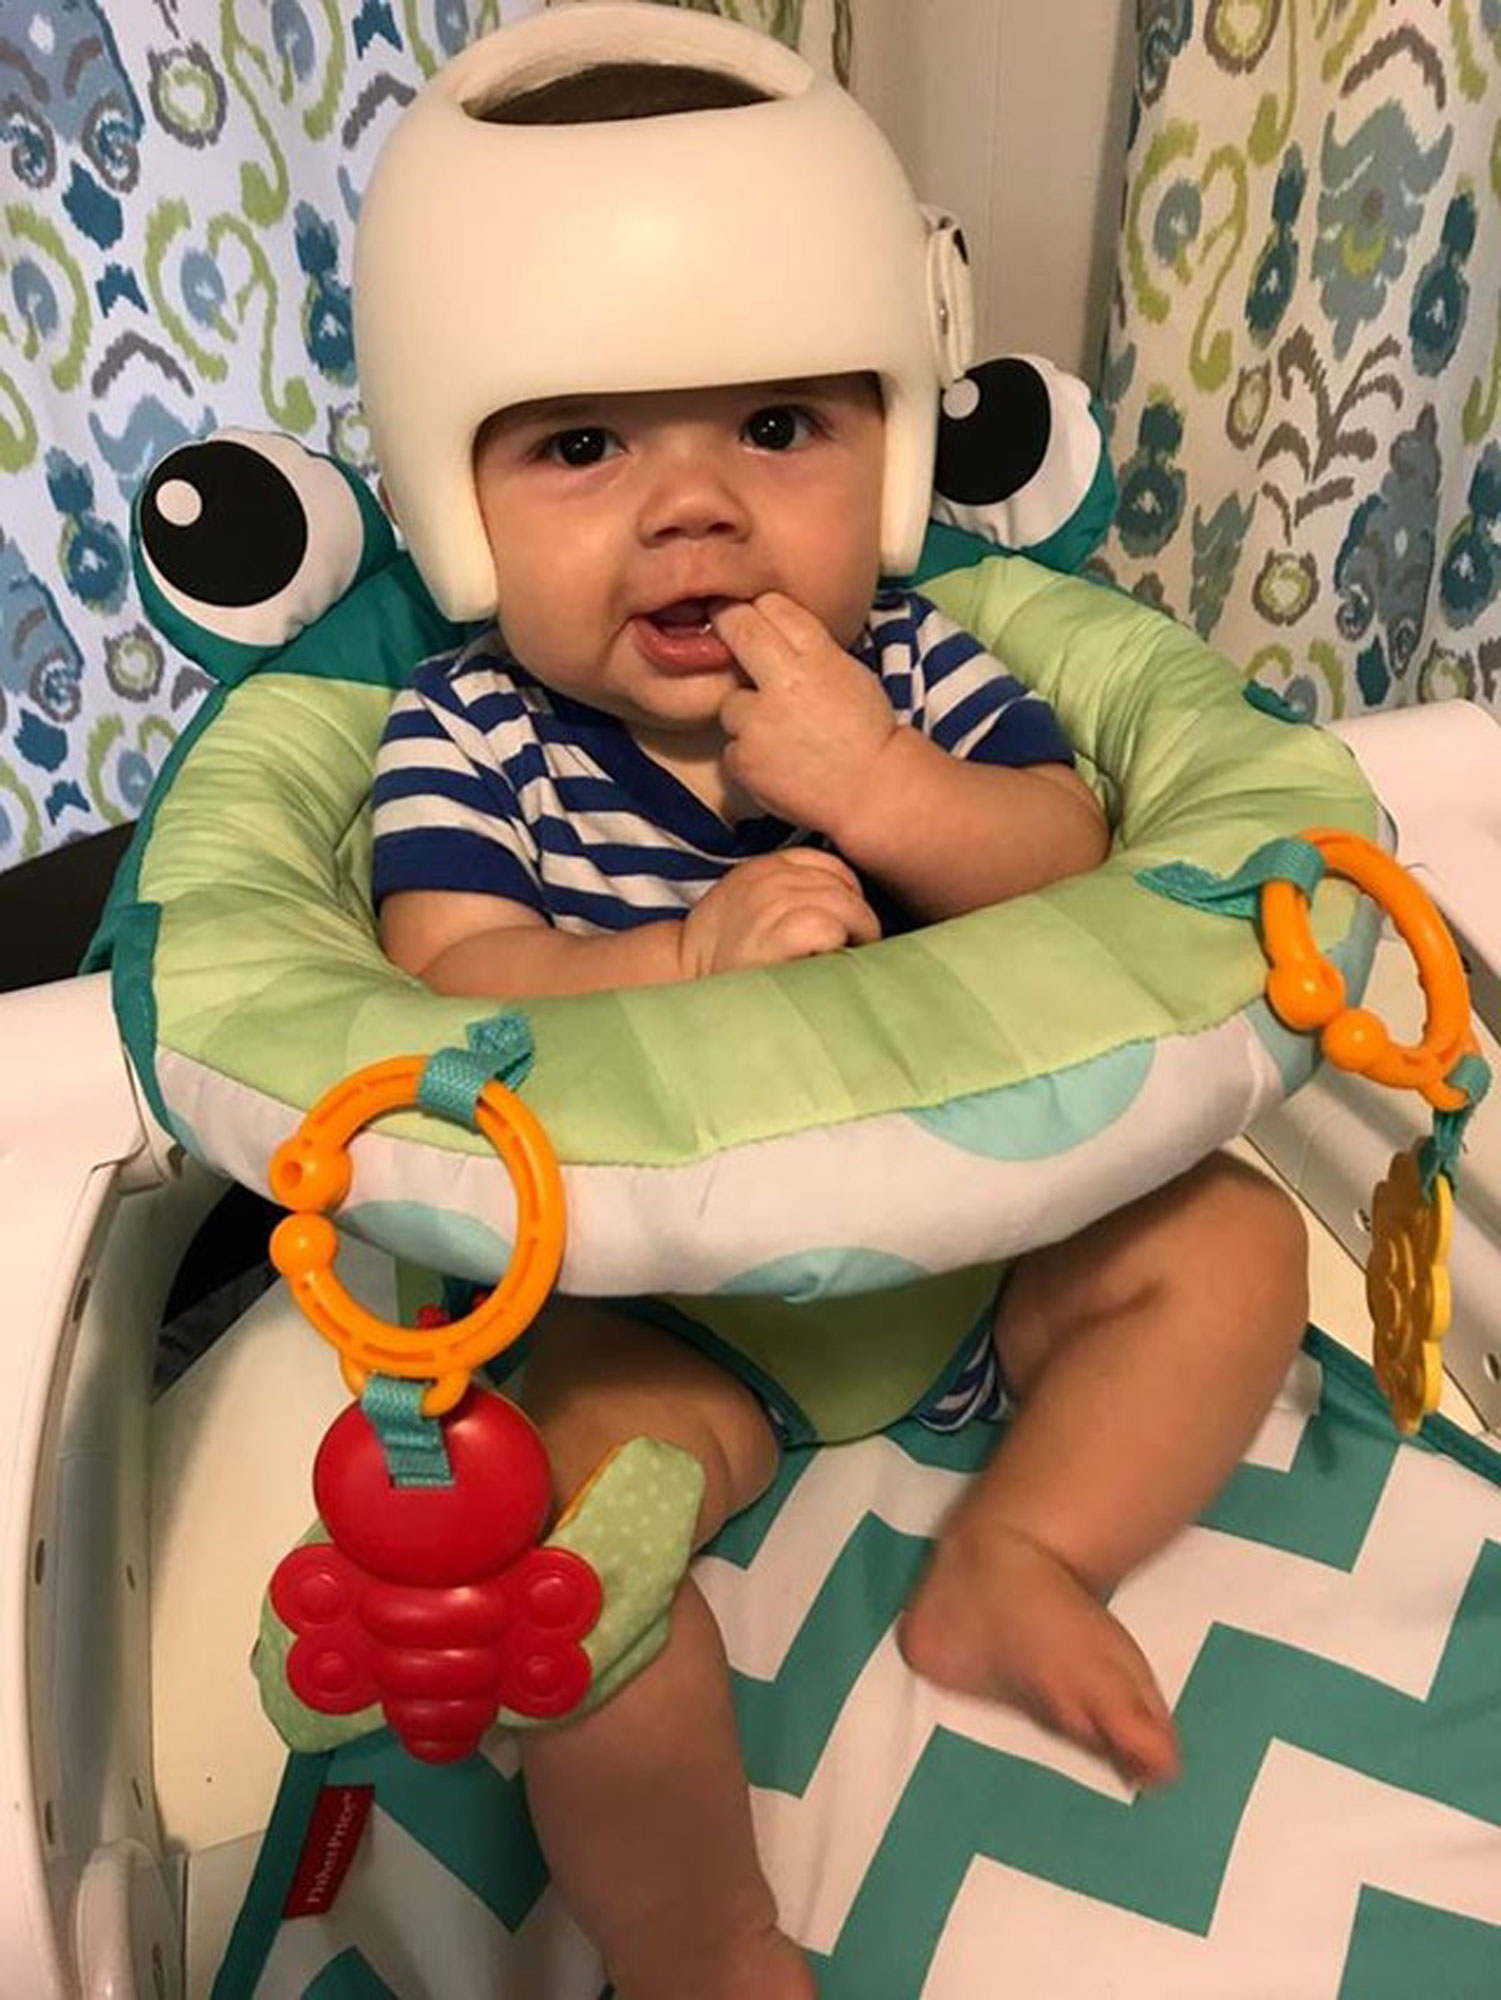 Everyone in This Texas Family Wears a Helmet in Adorable Show of Support for Baby with Flat Head Syndrome